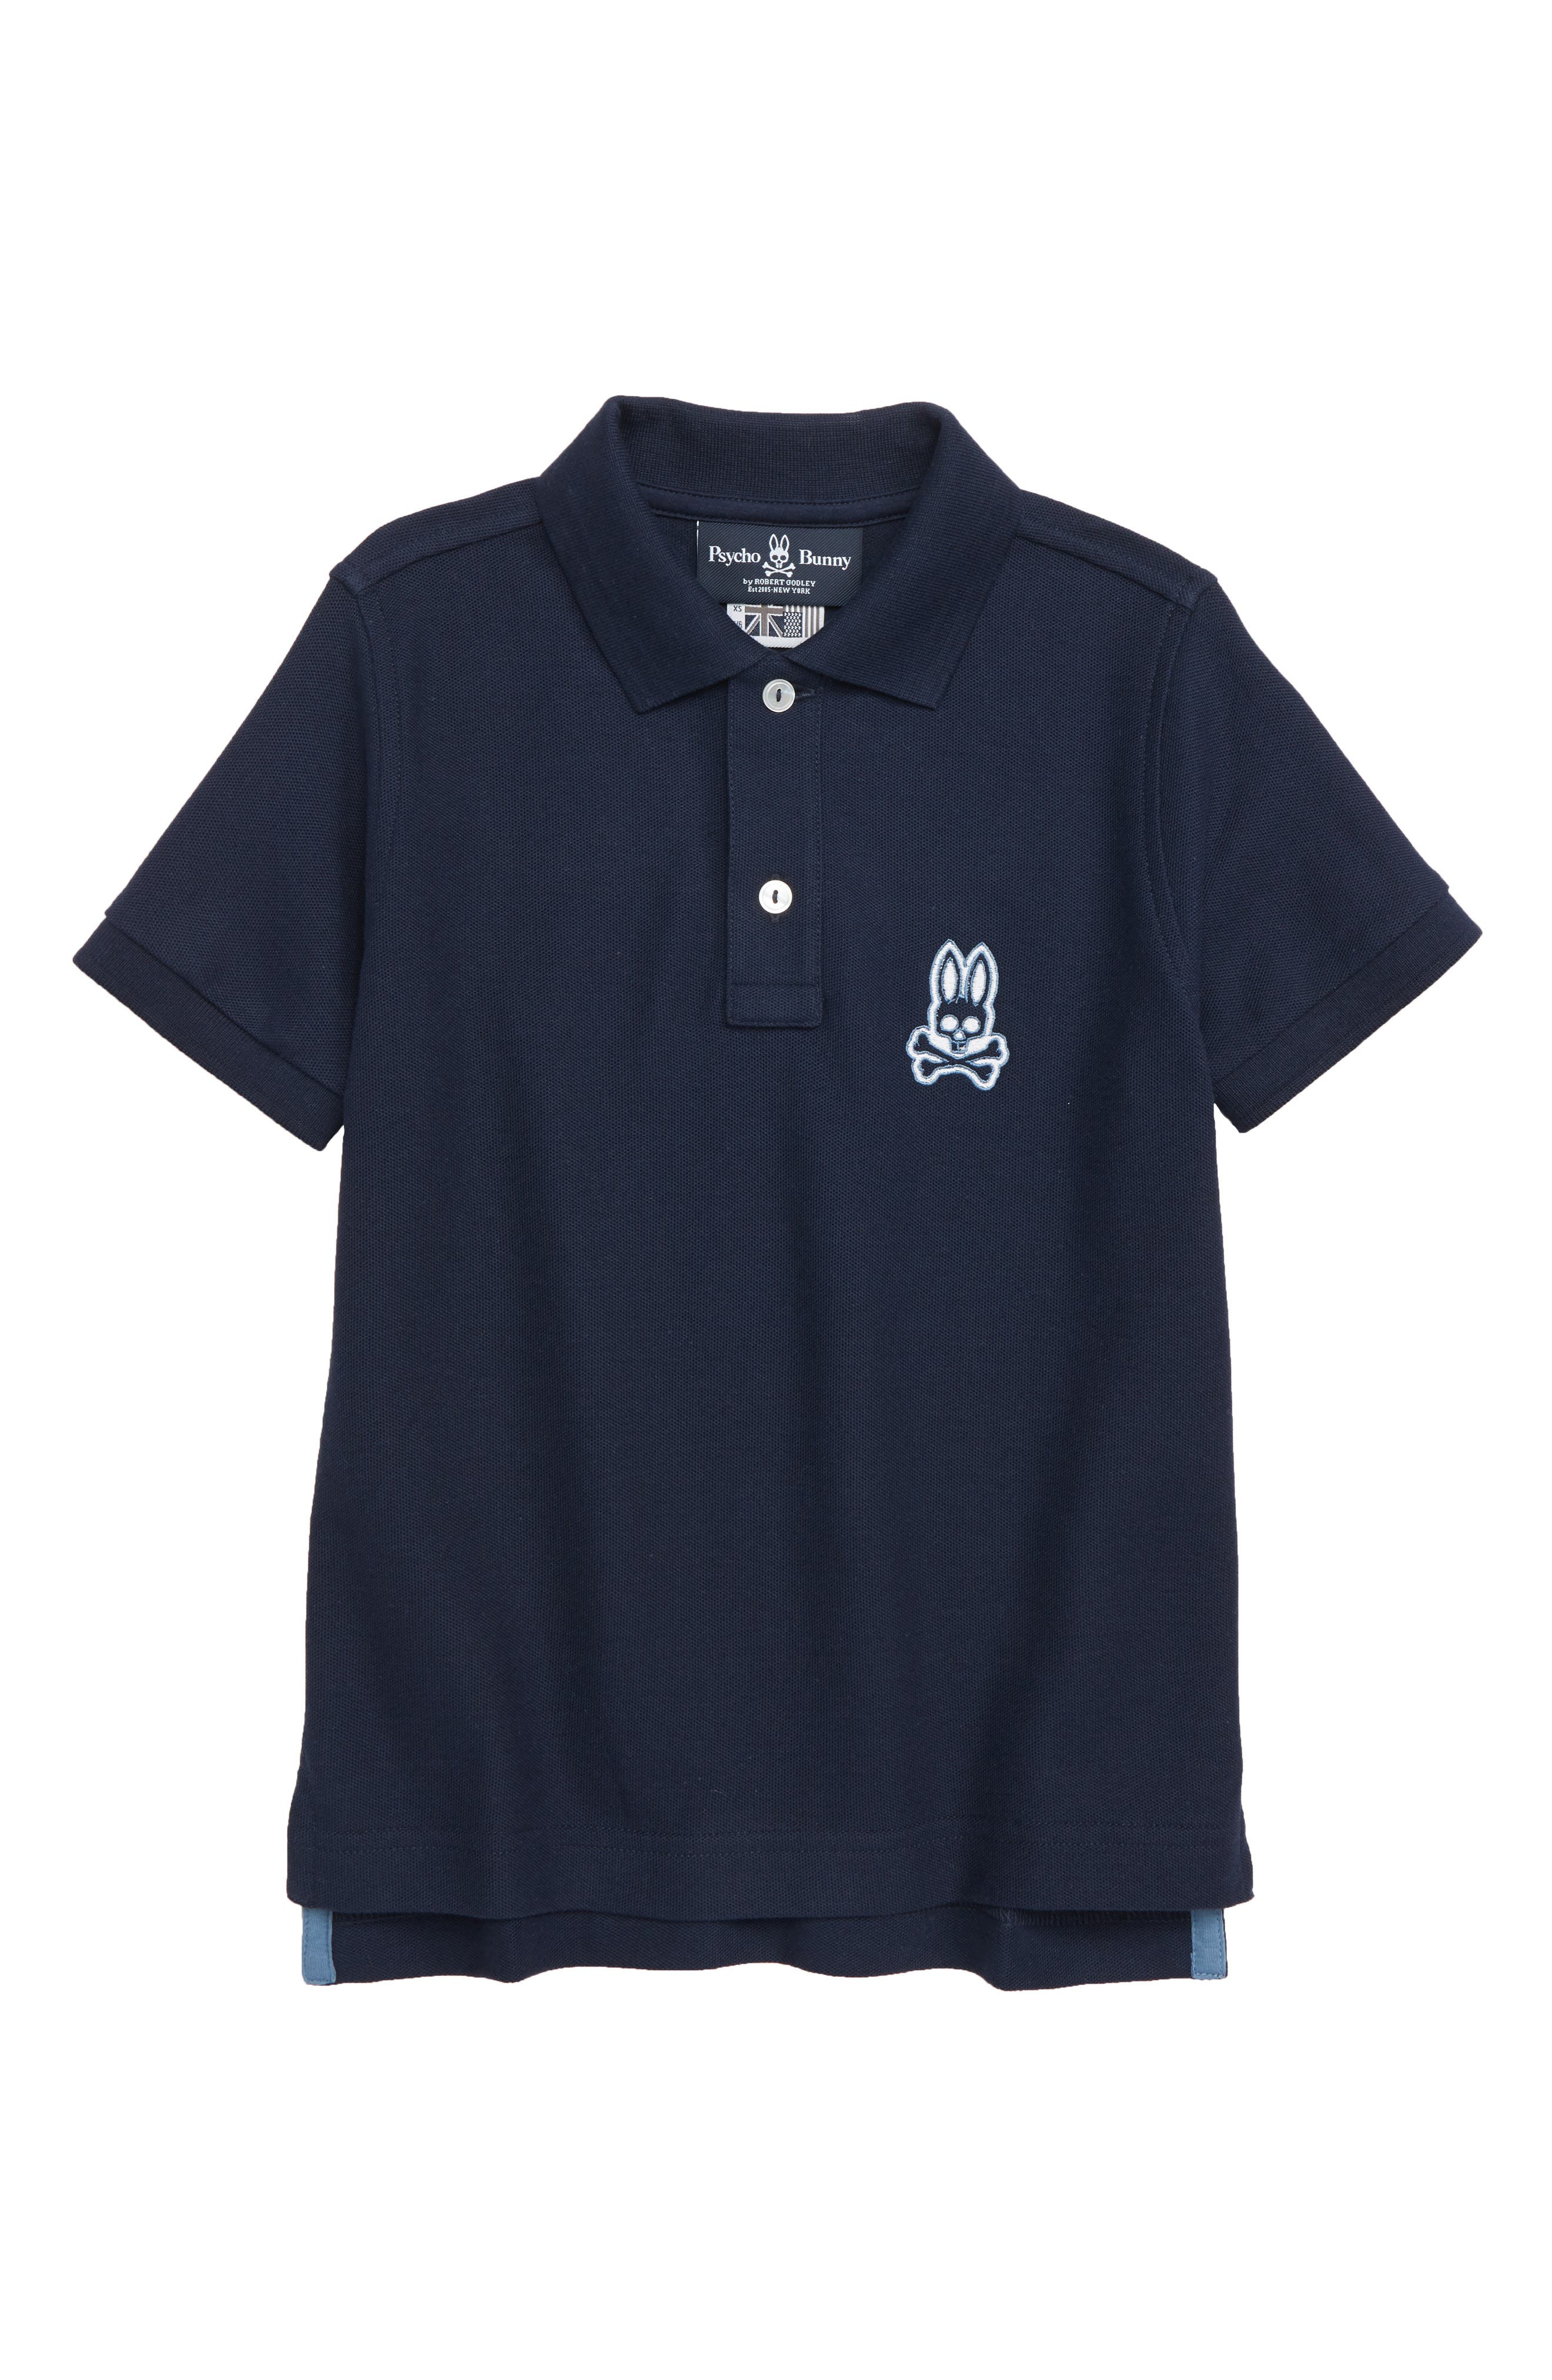 Alto Bunny Polo,                         Main,                         color, NAVY